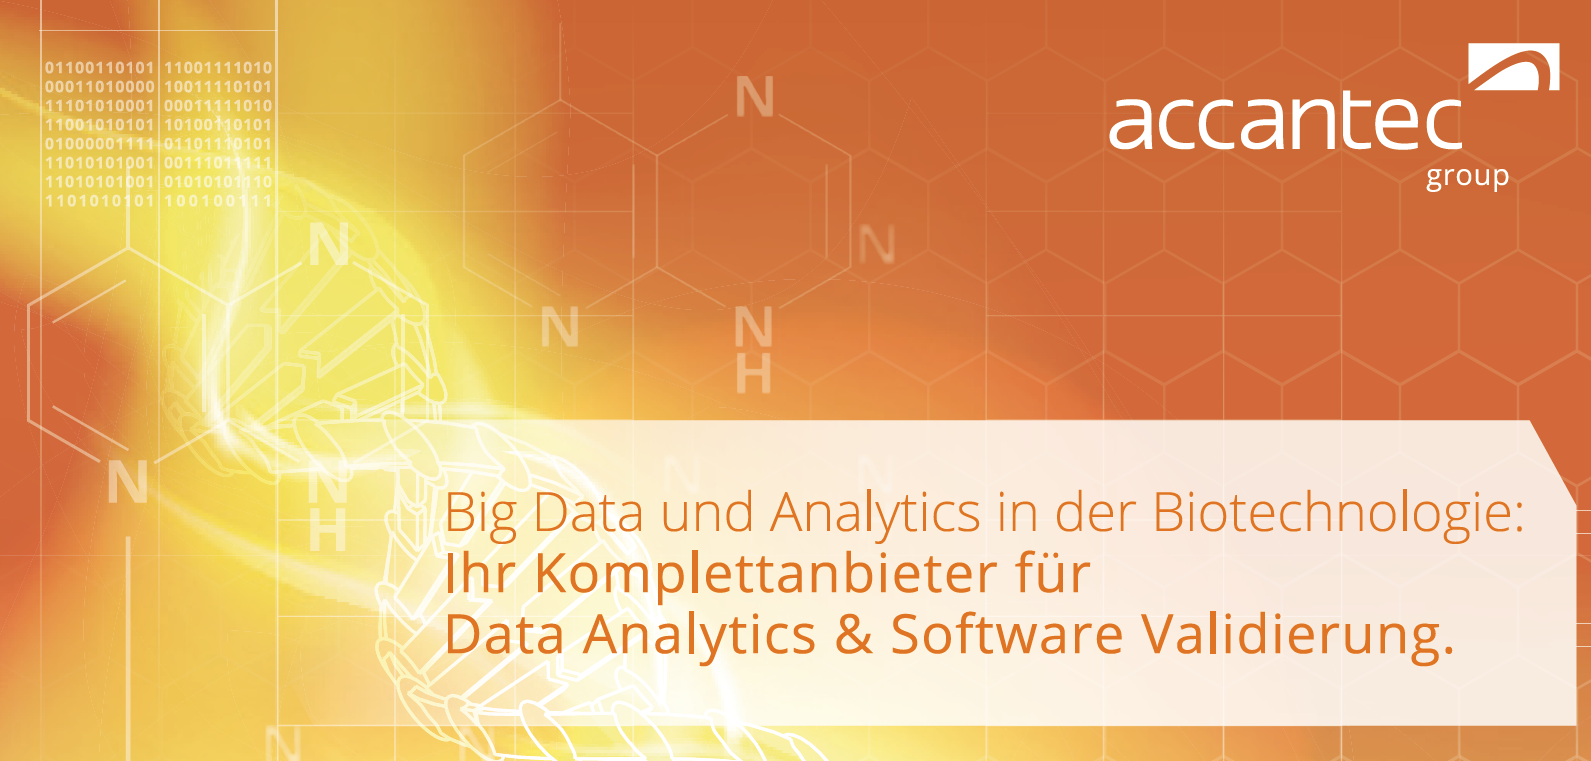 accantec group Big Data und Data Analytics in der Biotechnologie DTB 2018